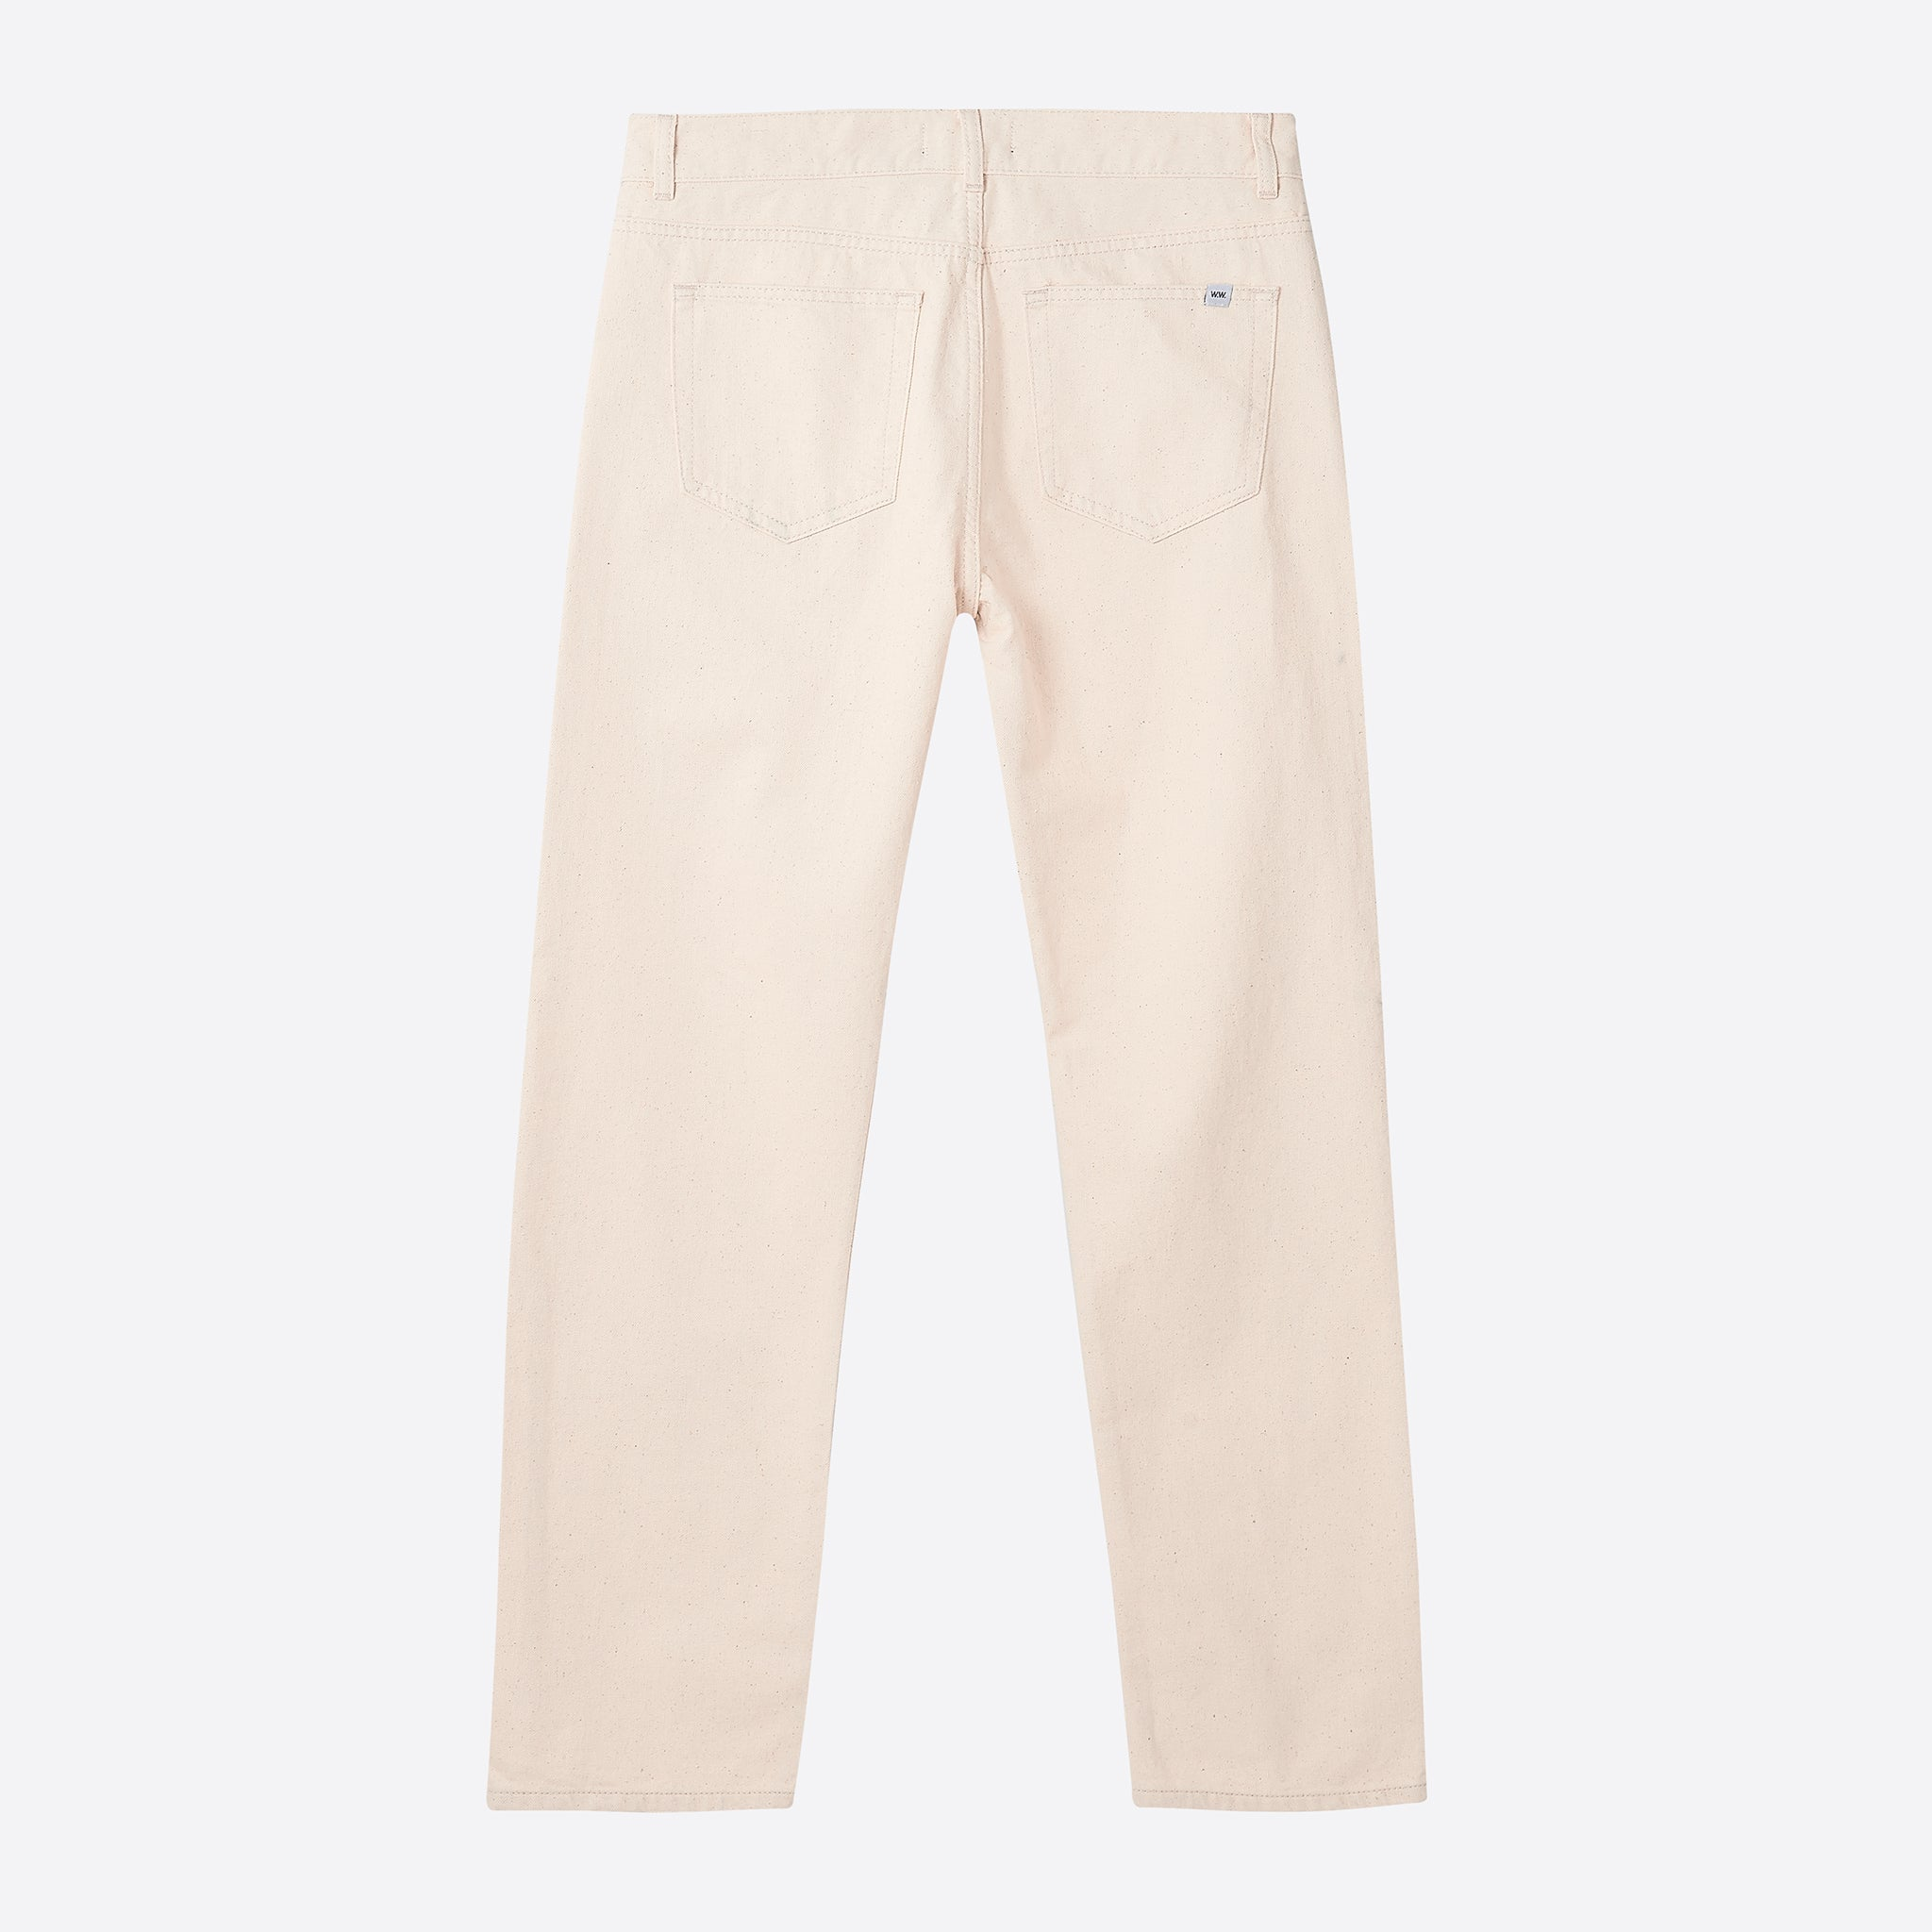 Wood Wood Gil Jeans in Off White